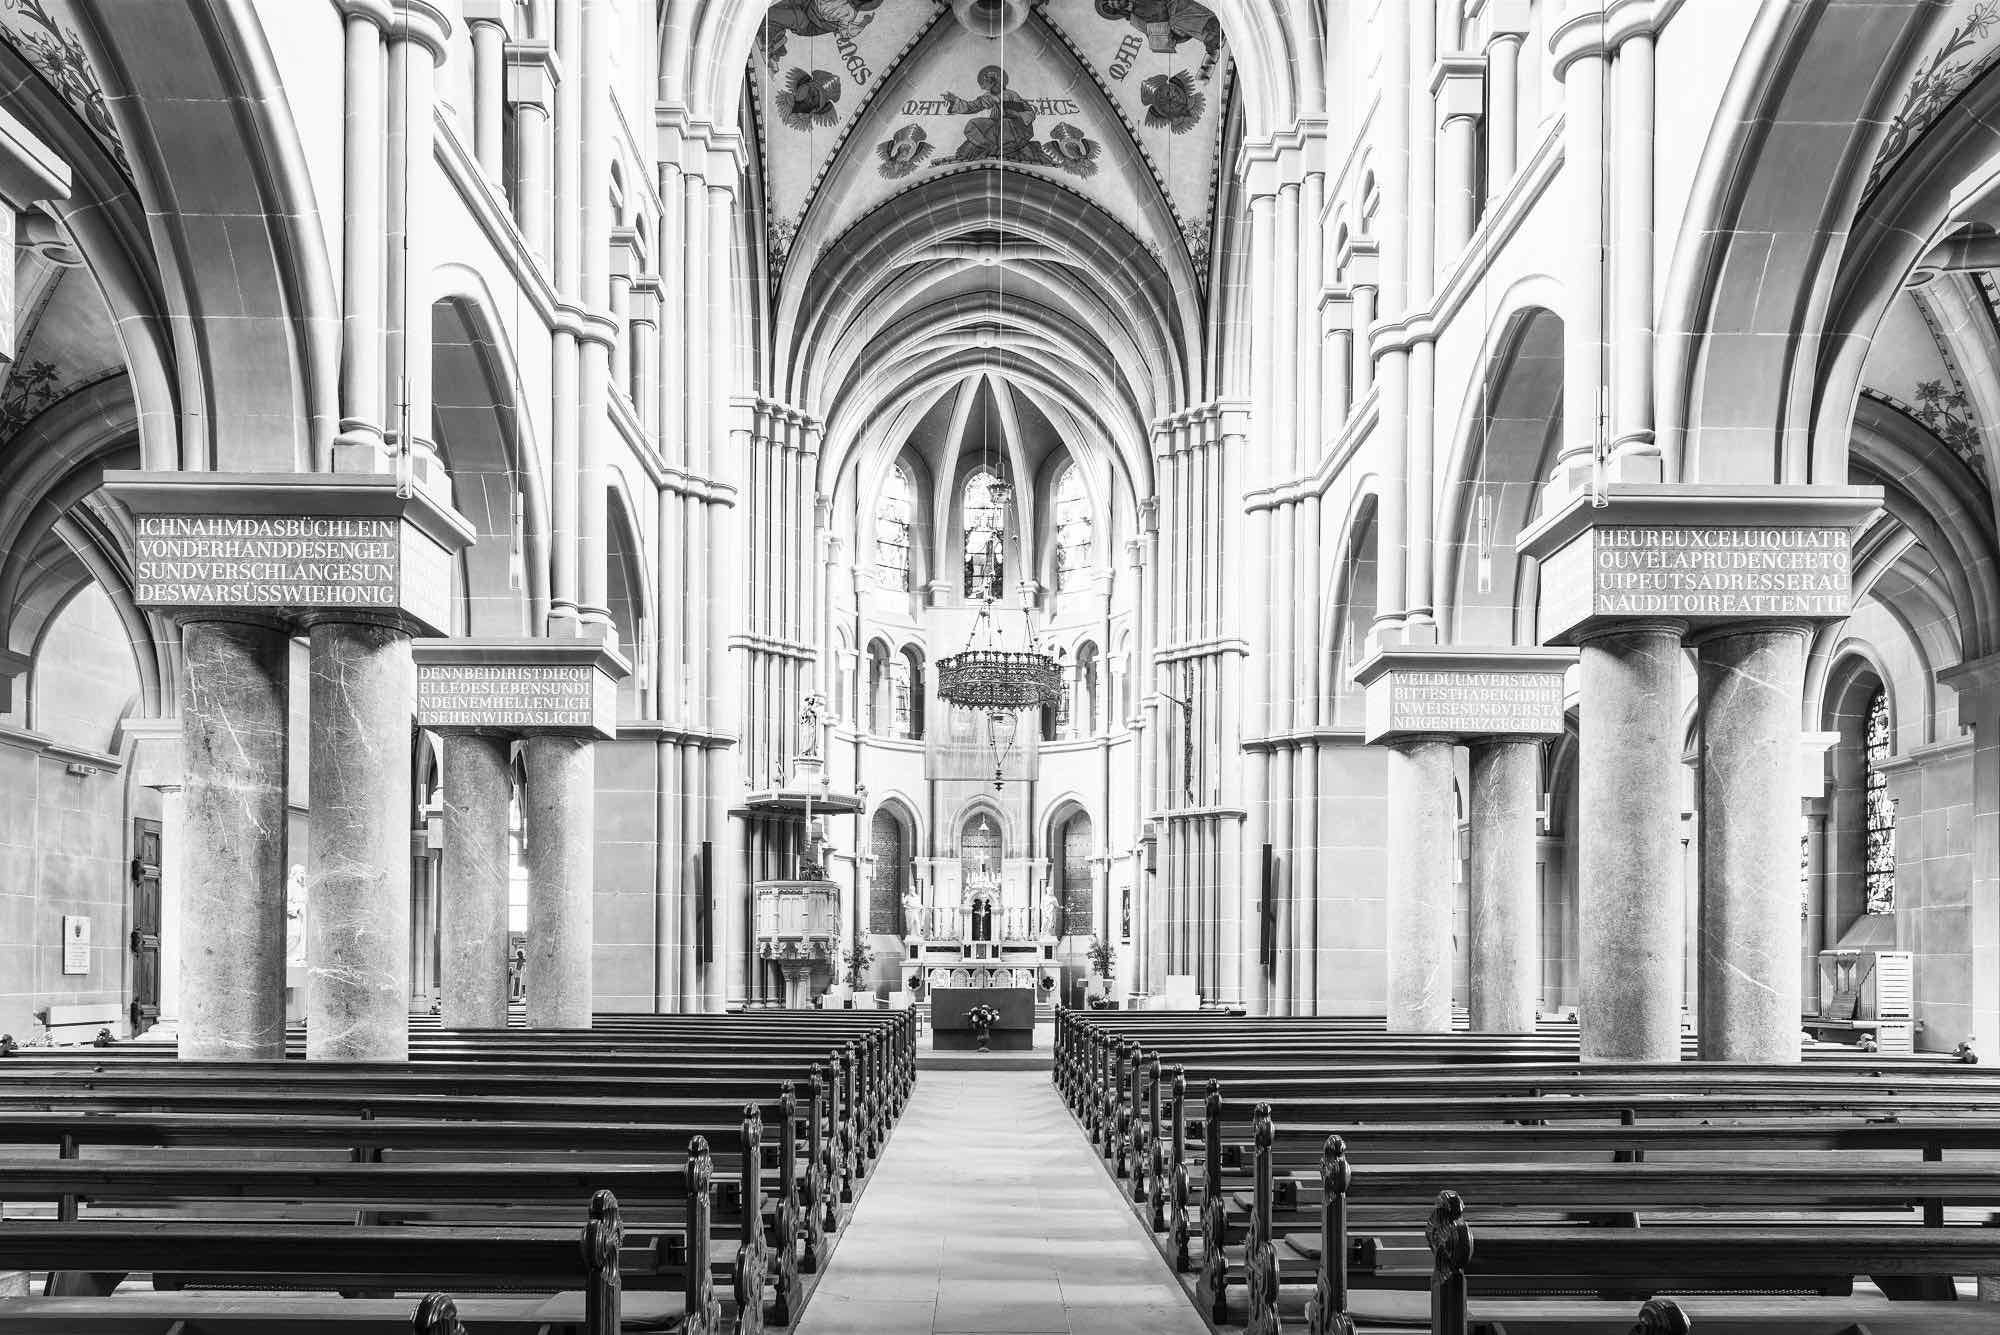 picture of inside of beautiful church space